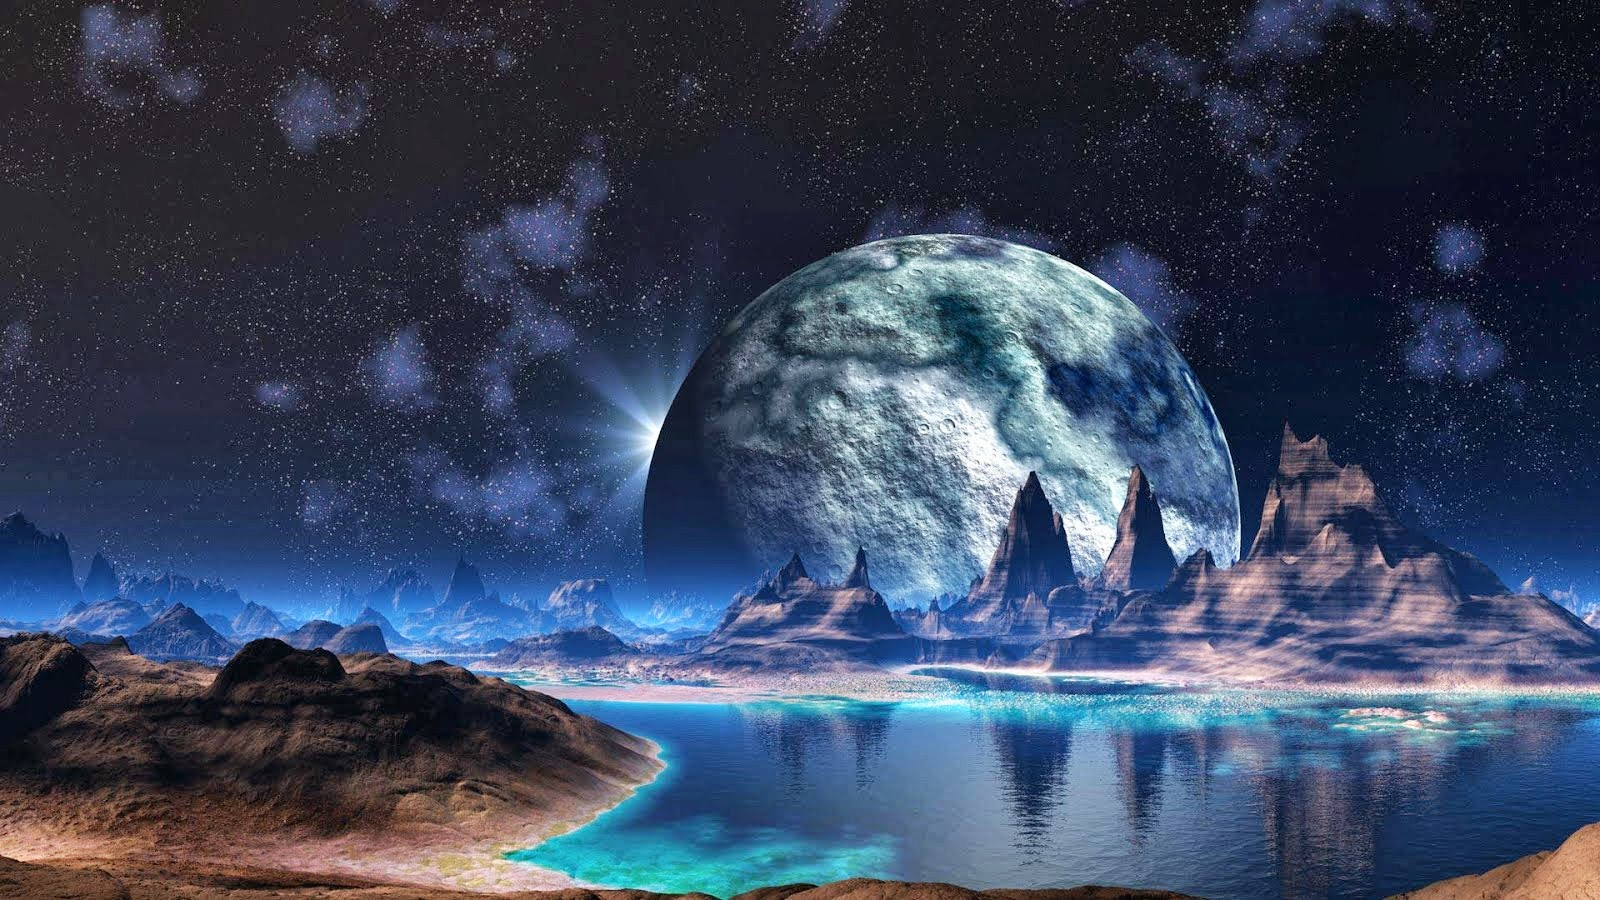 Space Hd Wallpapers 1080p Hd Wallpapers 1080p Nature Windows 8 Space 1600x900